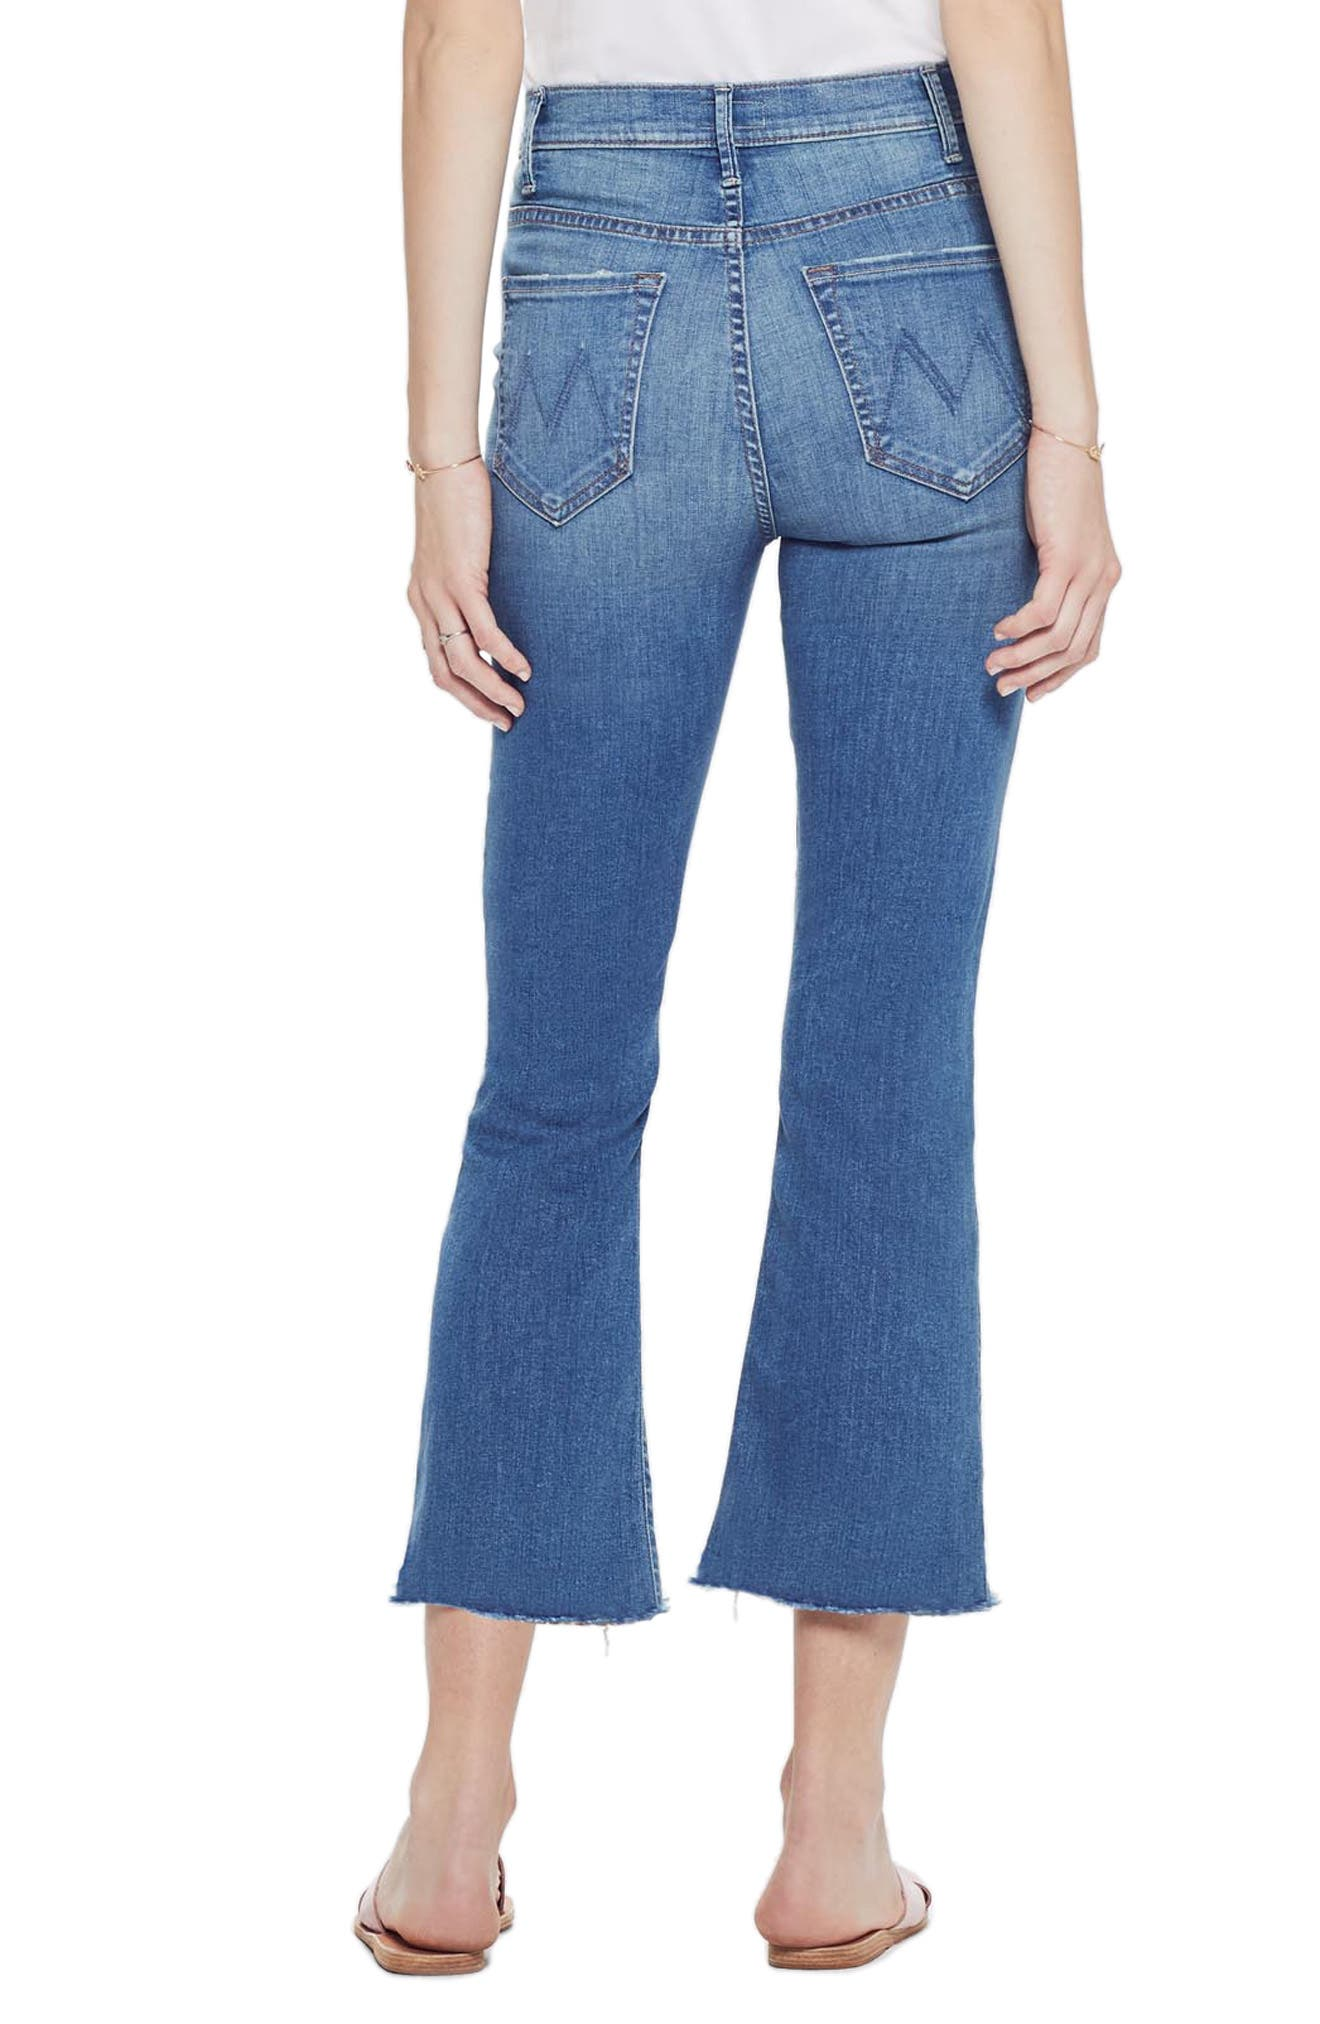 MOTHER, The Hustler High Waist Ankle Flare Jeans, Alternate thumbnail 2, color, WISHFUL DRINKING